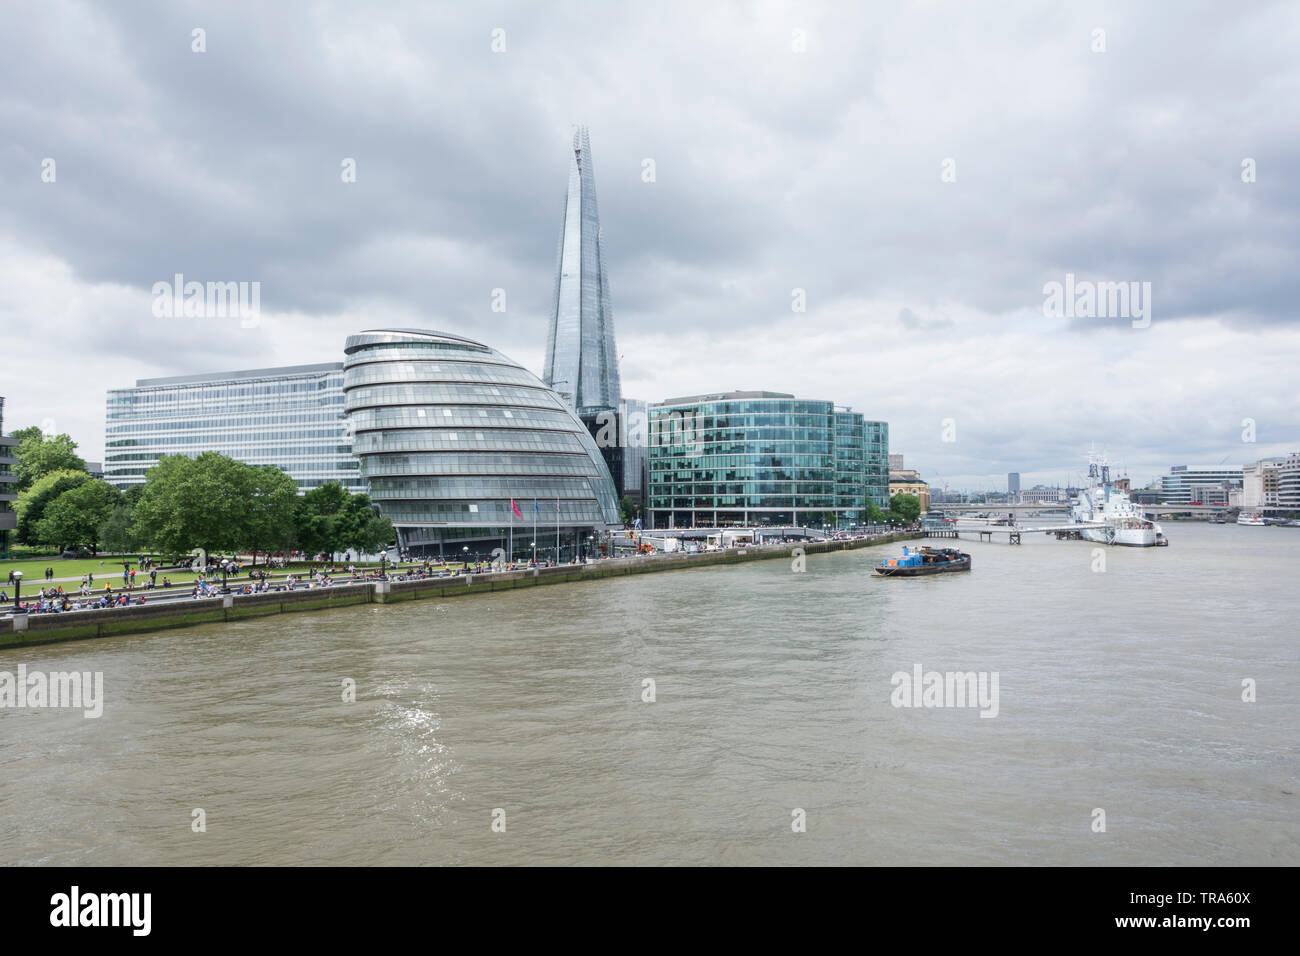 Norman Foster's London City Hall on the banks of the River Thames, London, UK - Stock Image